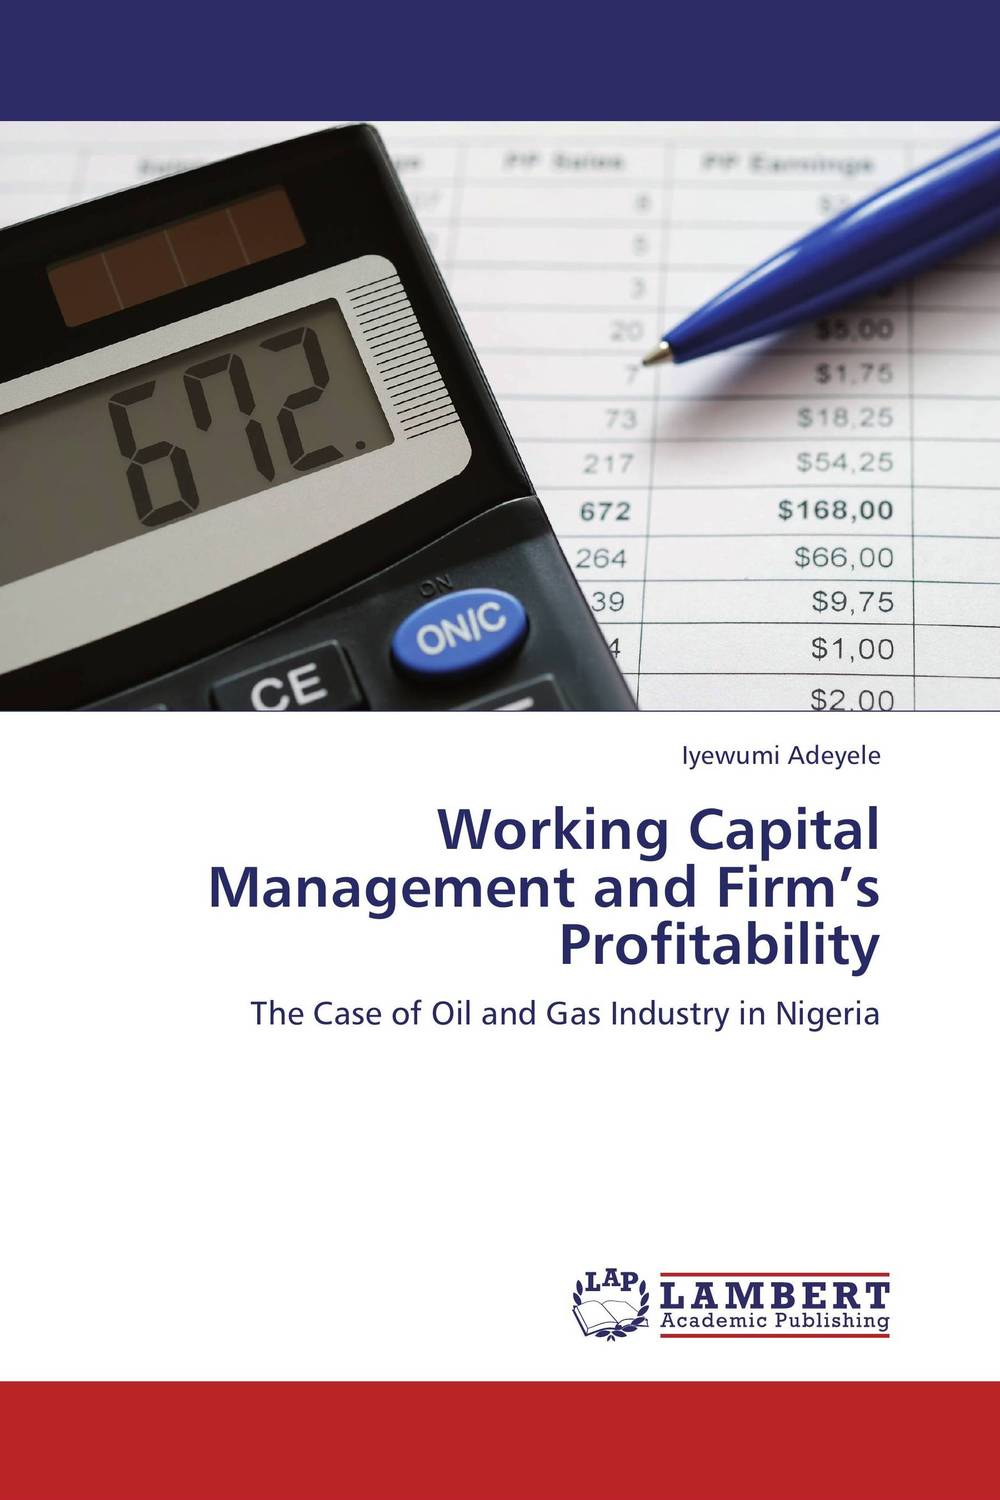 Working Capital Management and Firm's Profitability james sagner working capital management applications and case studies